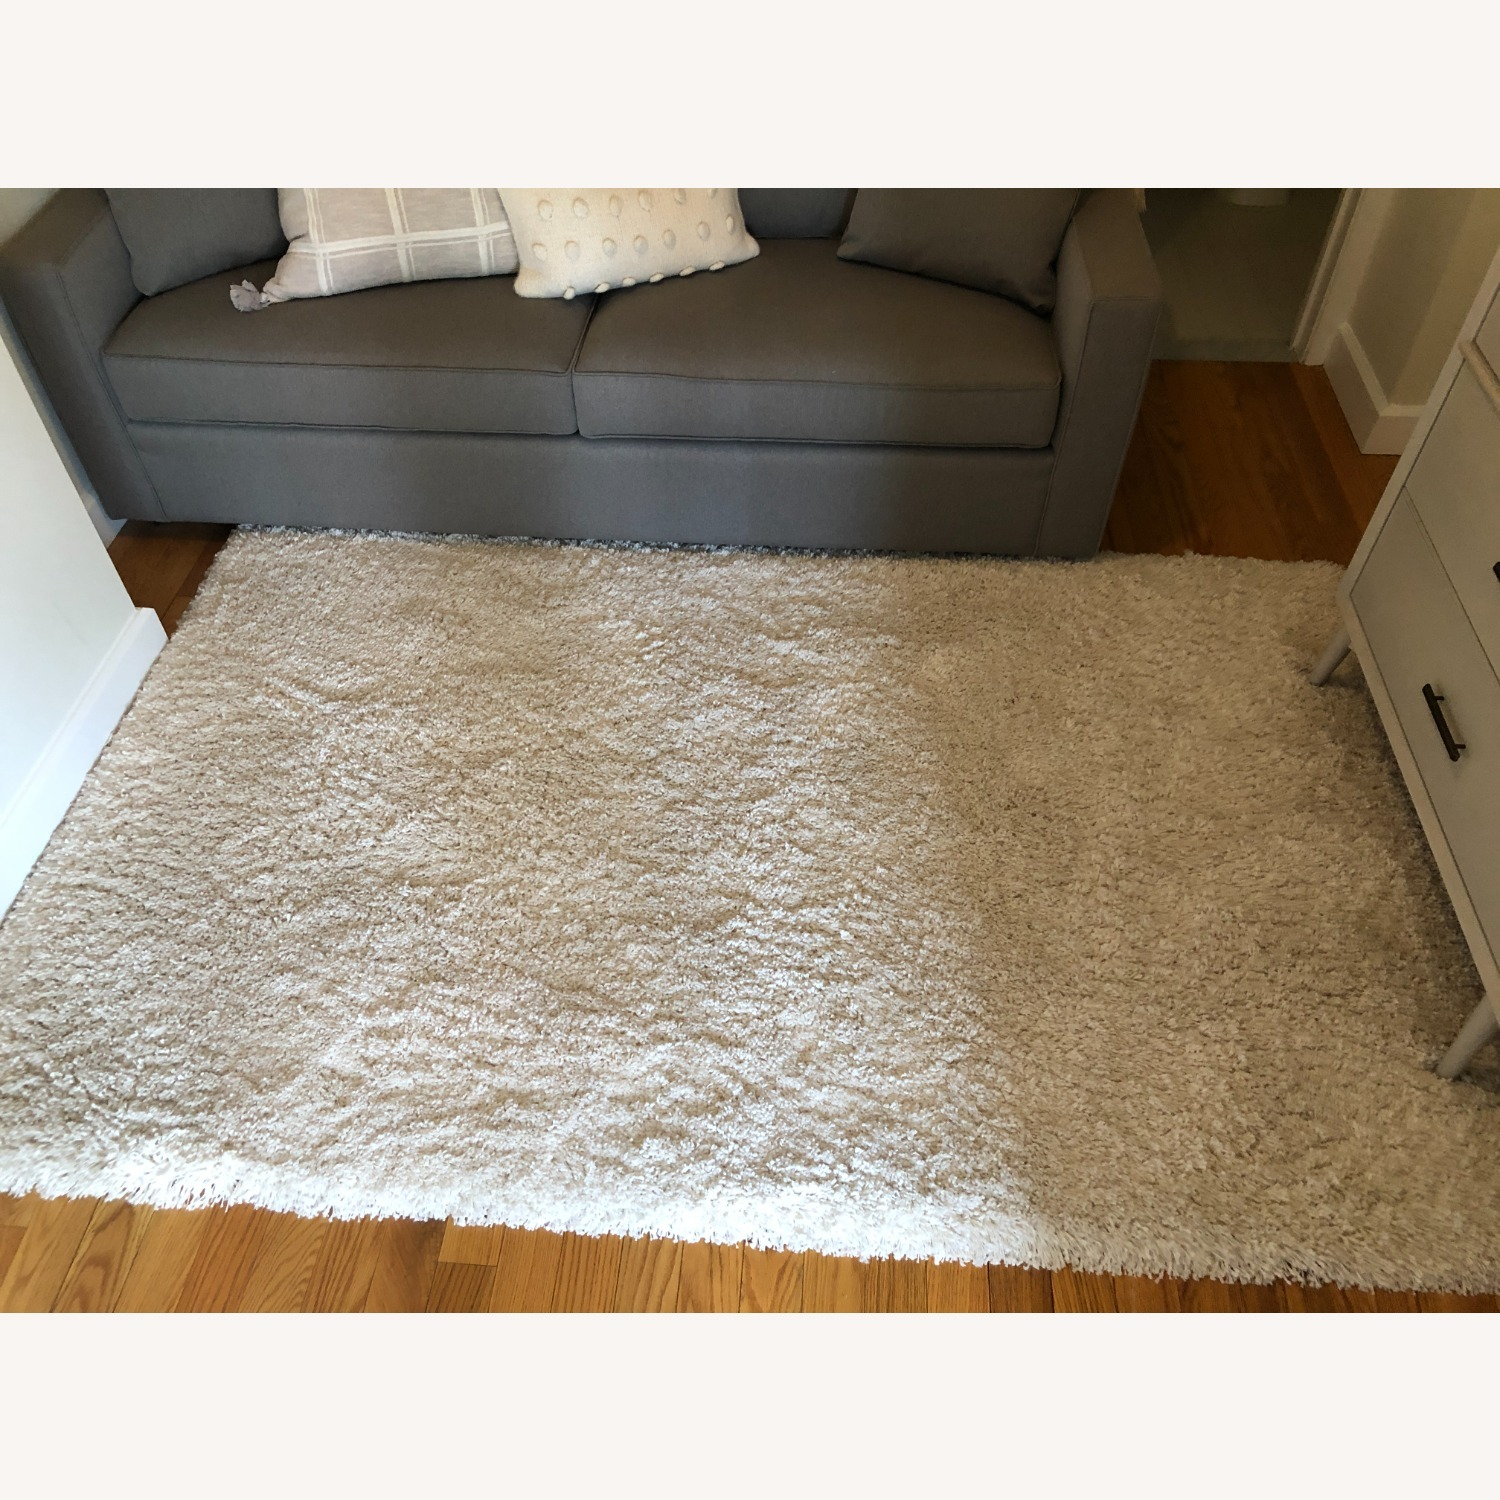 Crate & Barrel Memphis White 5x8' Rug - image-8